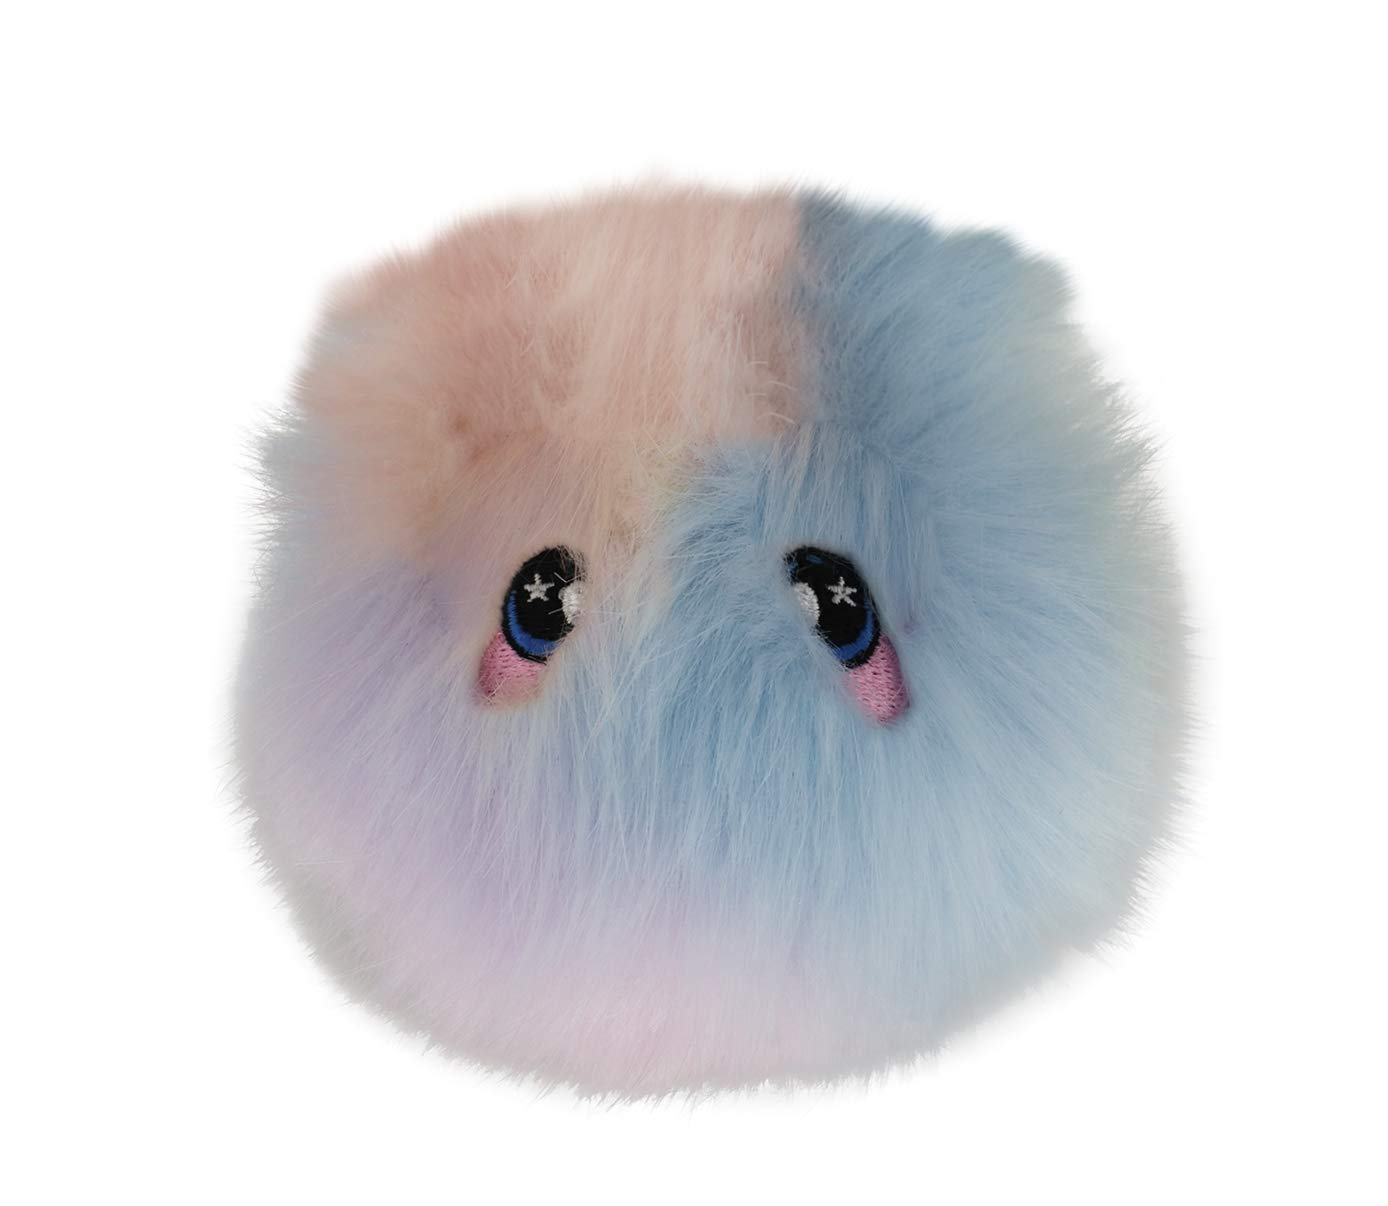 Squeezamals Series 2-3.5 Super-Squishy Slow Rise Scented Foam Stuffed Animal Squeezable Soft Adorable! Cute Narcissa Narwhal